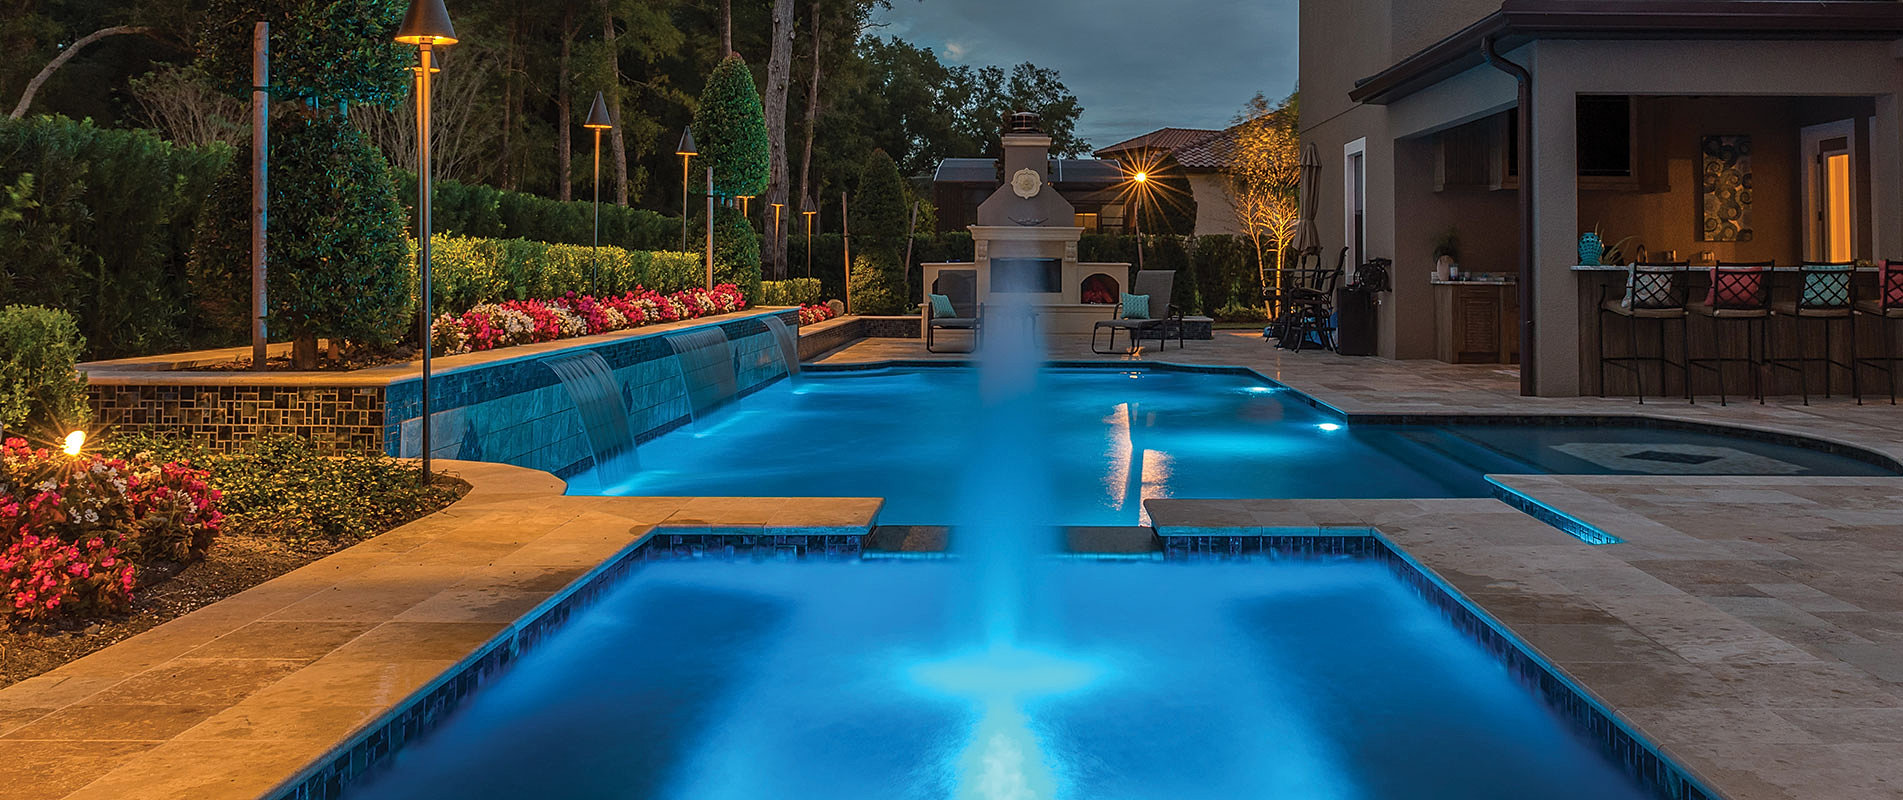 Custom luxury pools in central florida by southern pool for Custom pool designs